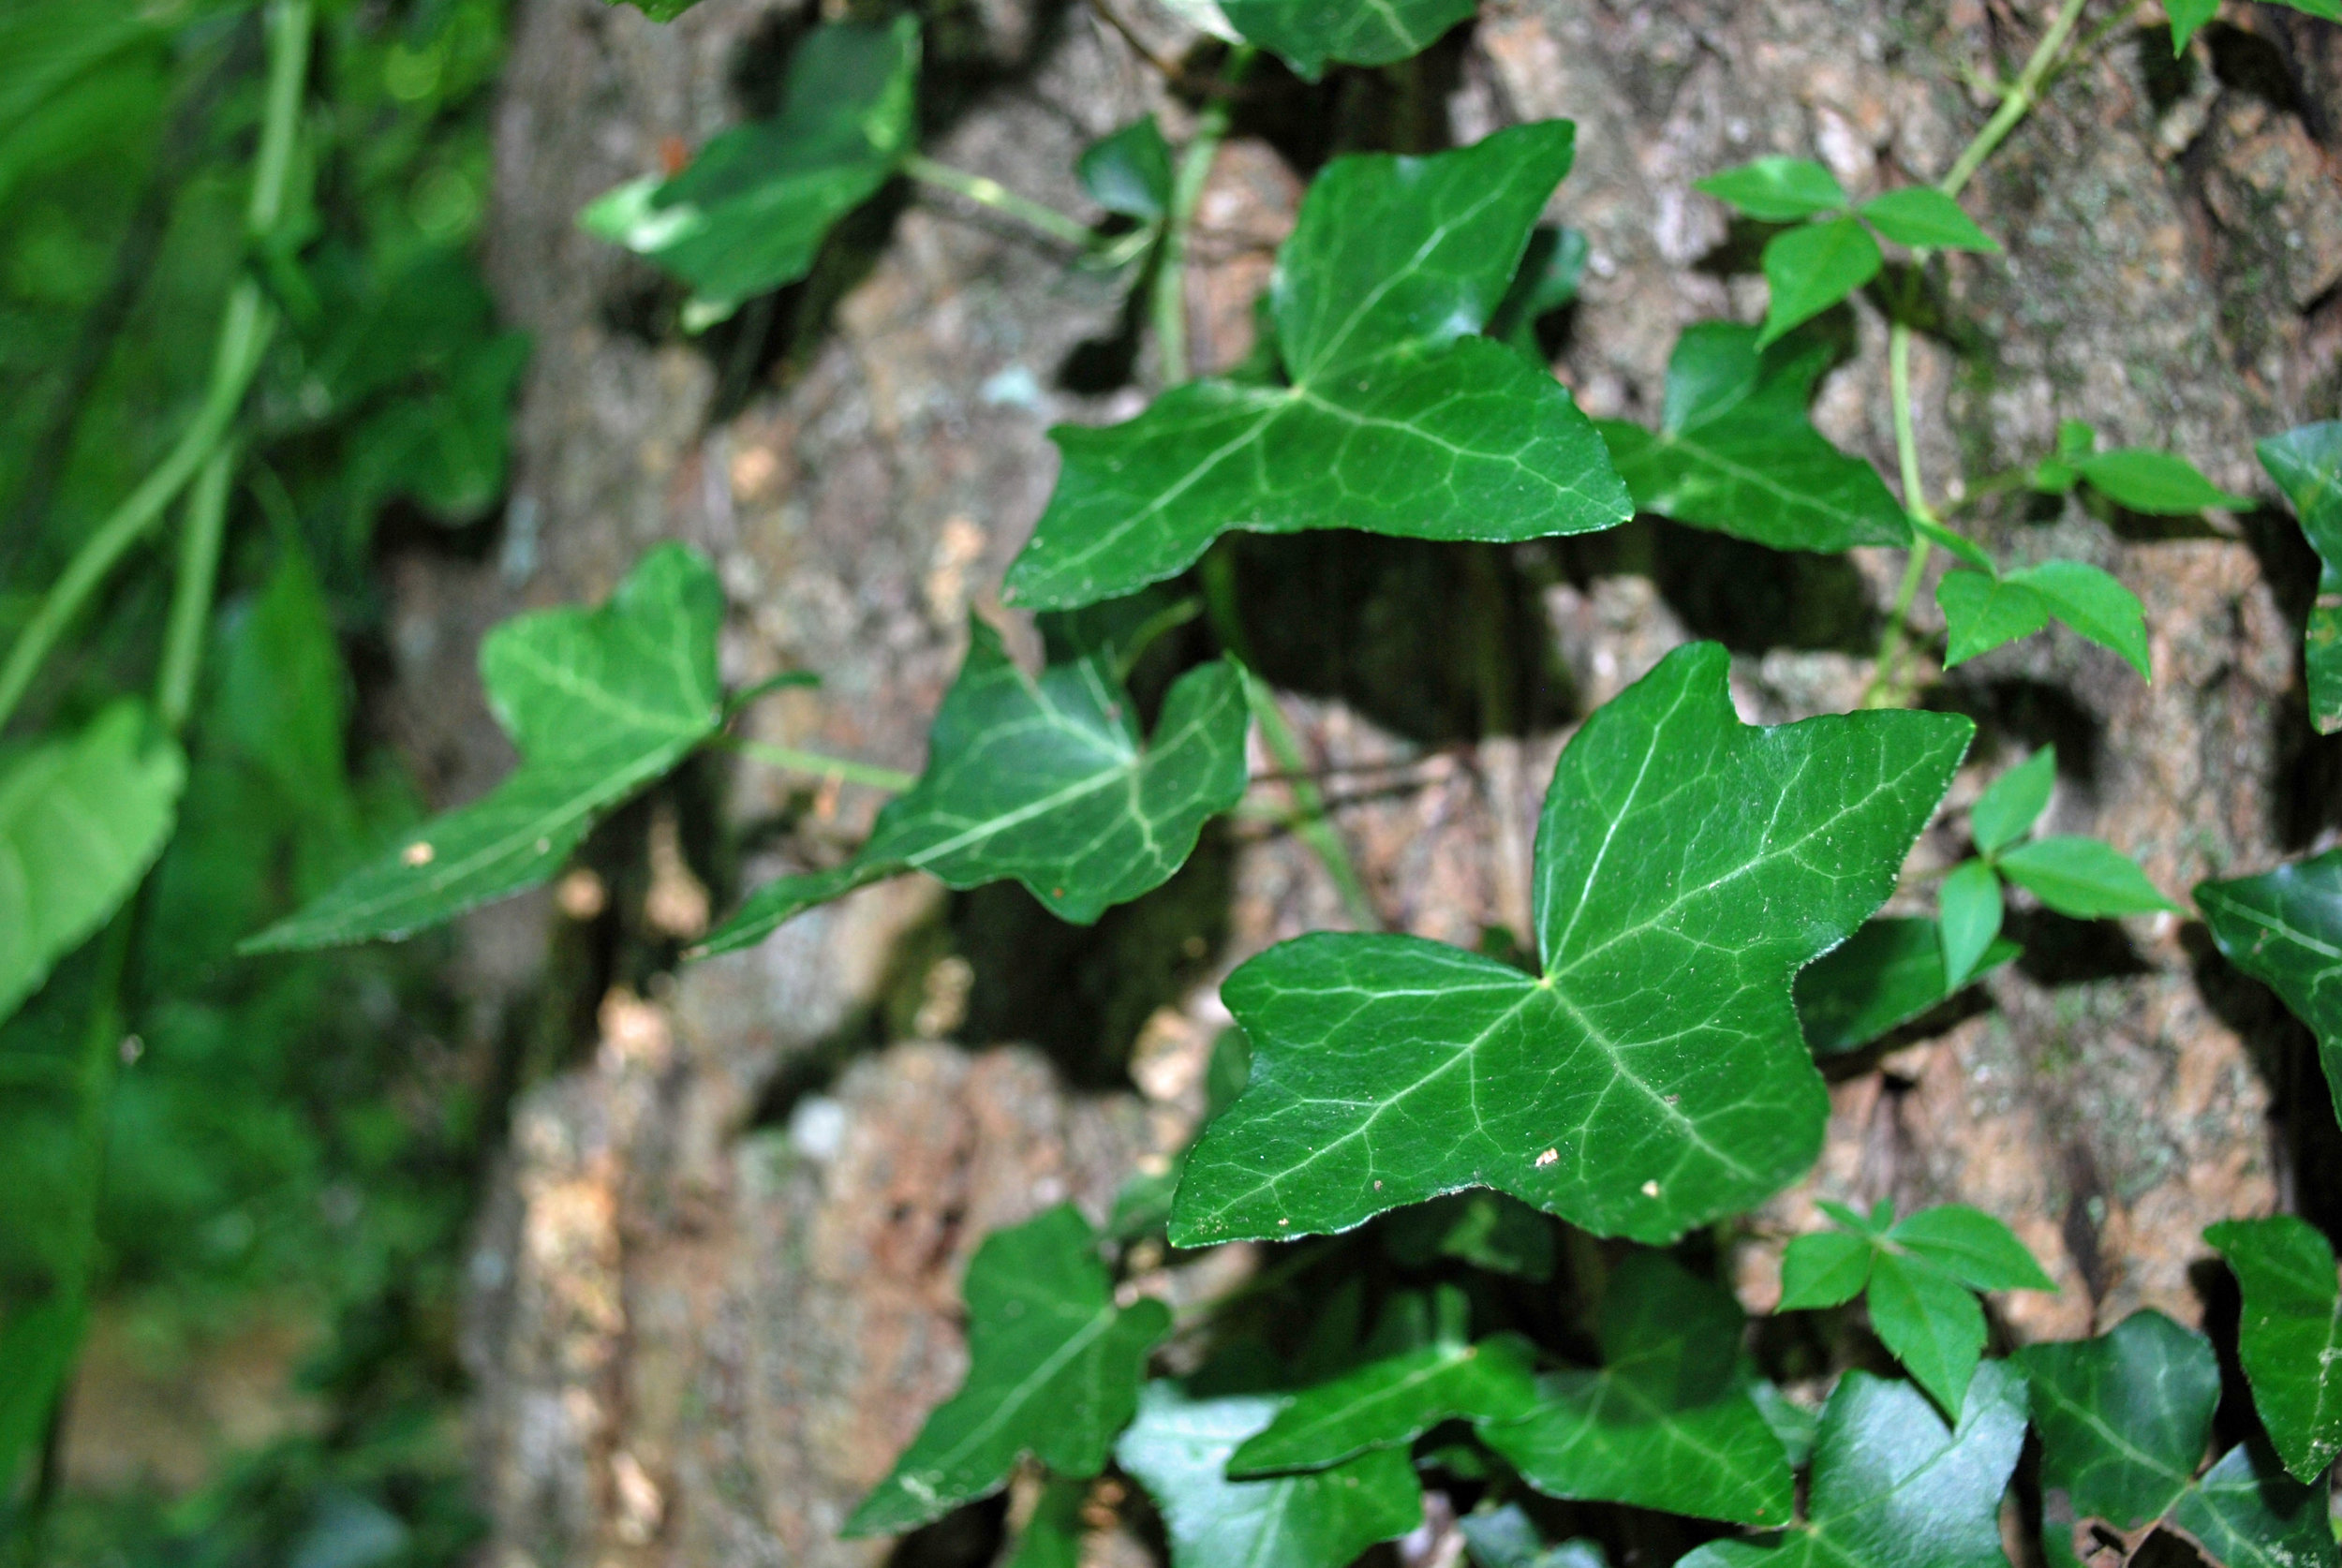 English ivy climbing a tree in an urban woodlot